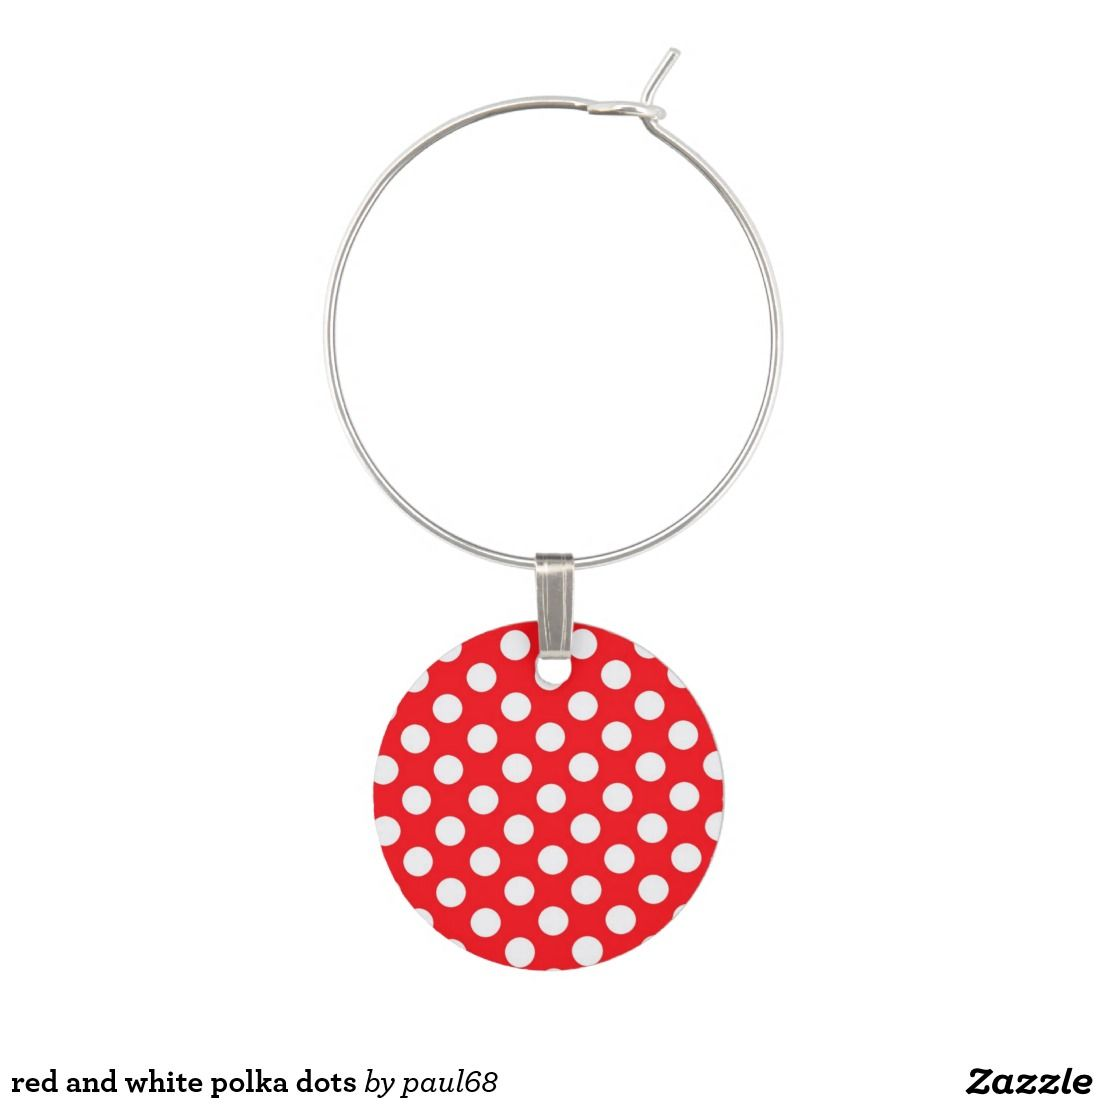 red and white polka dots wine charms